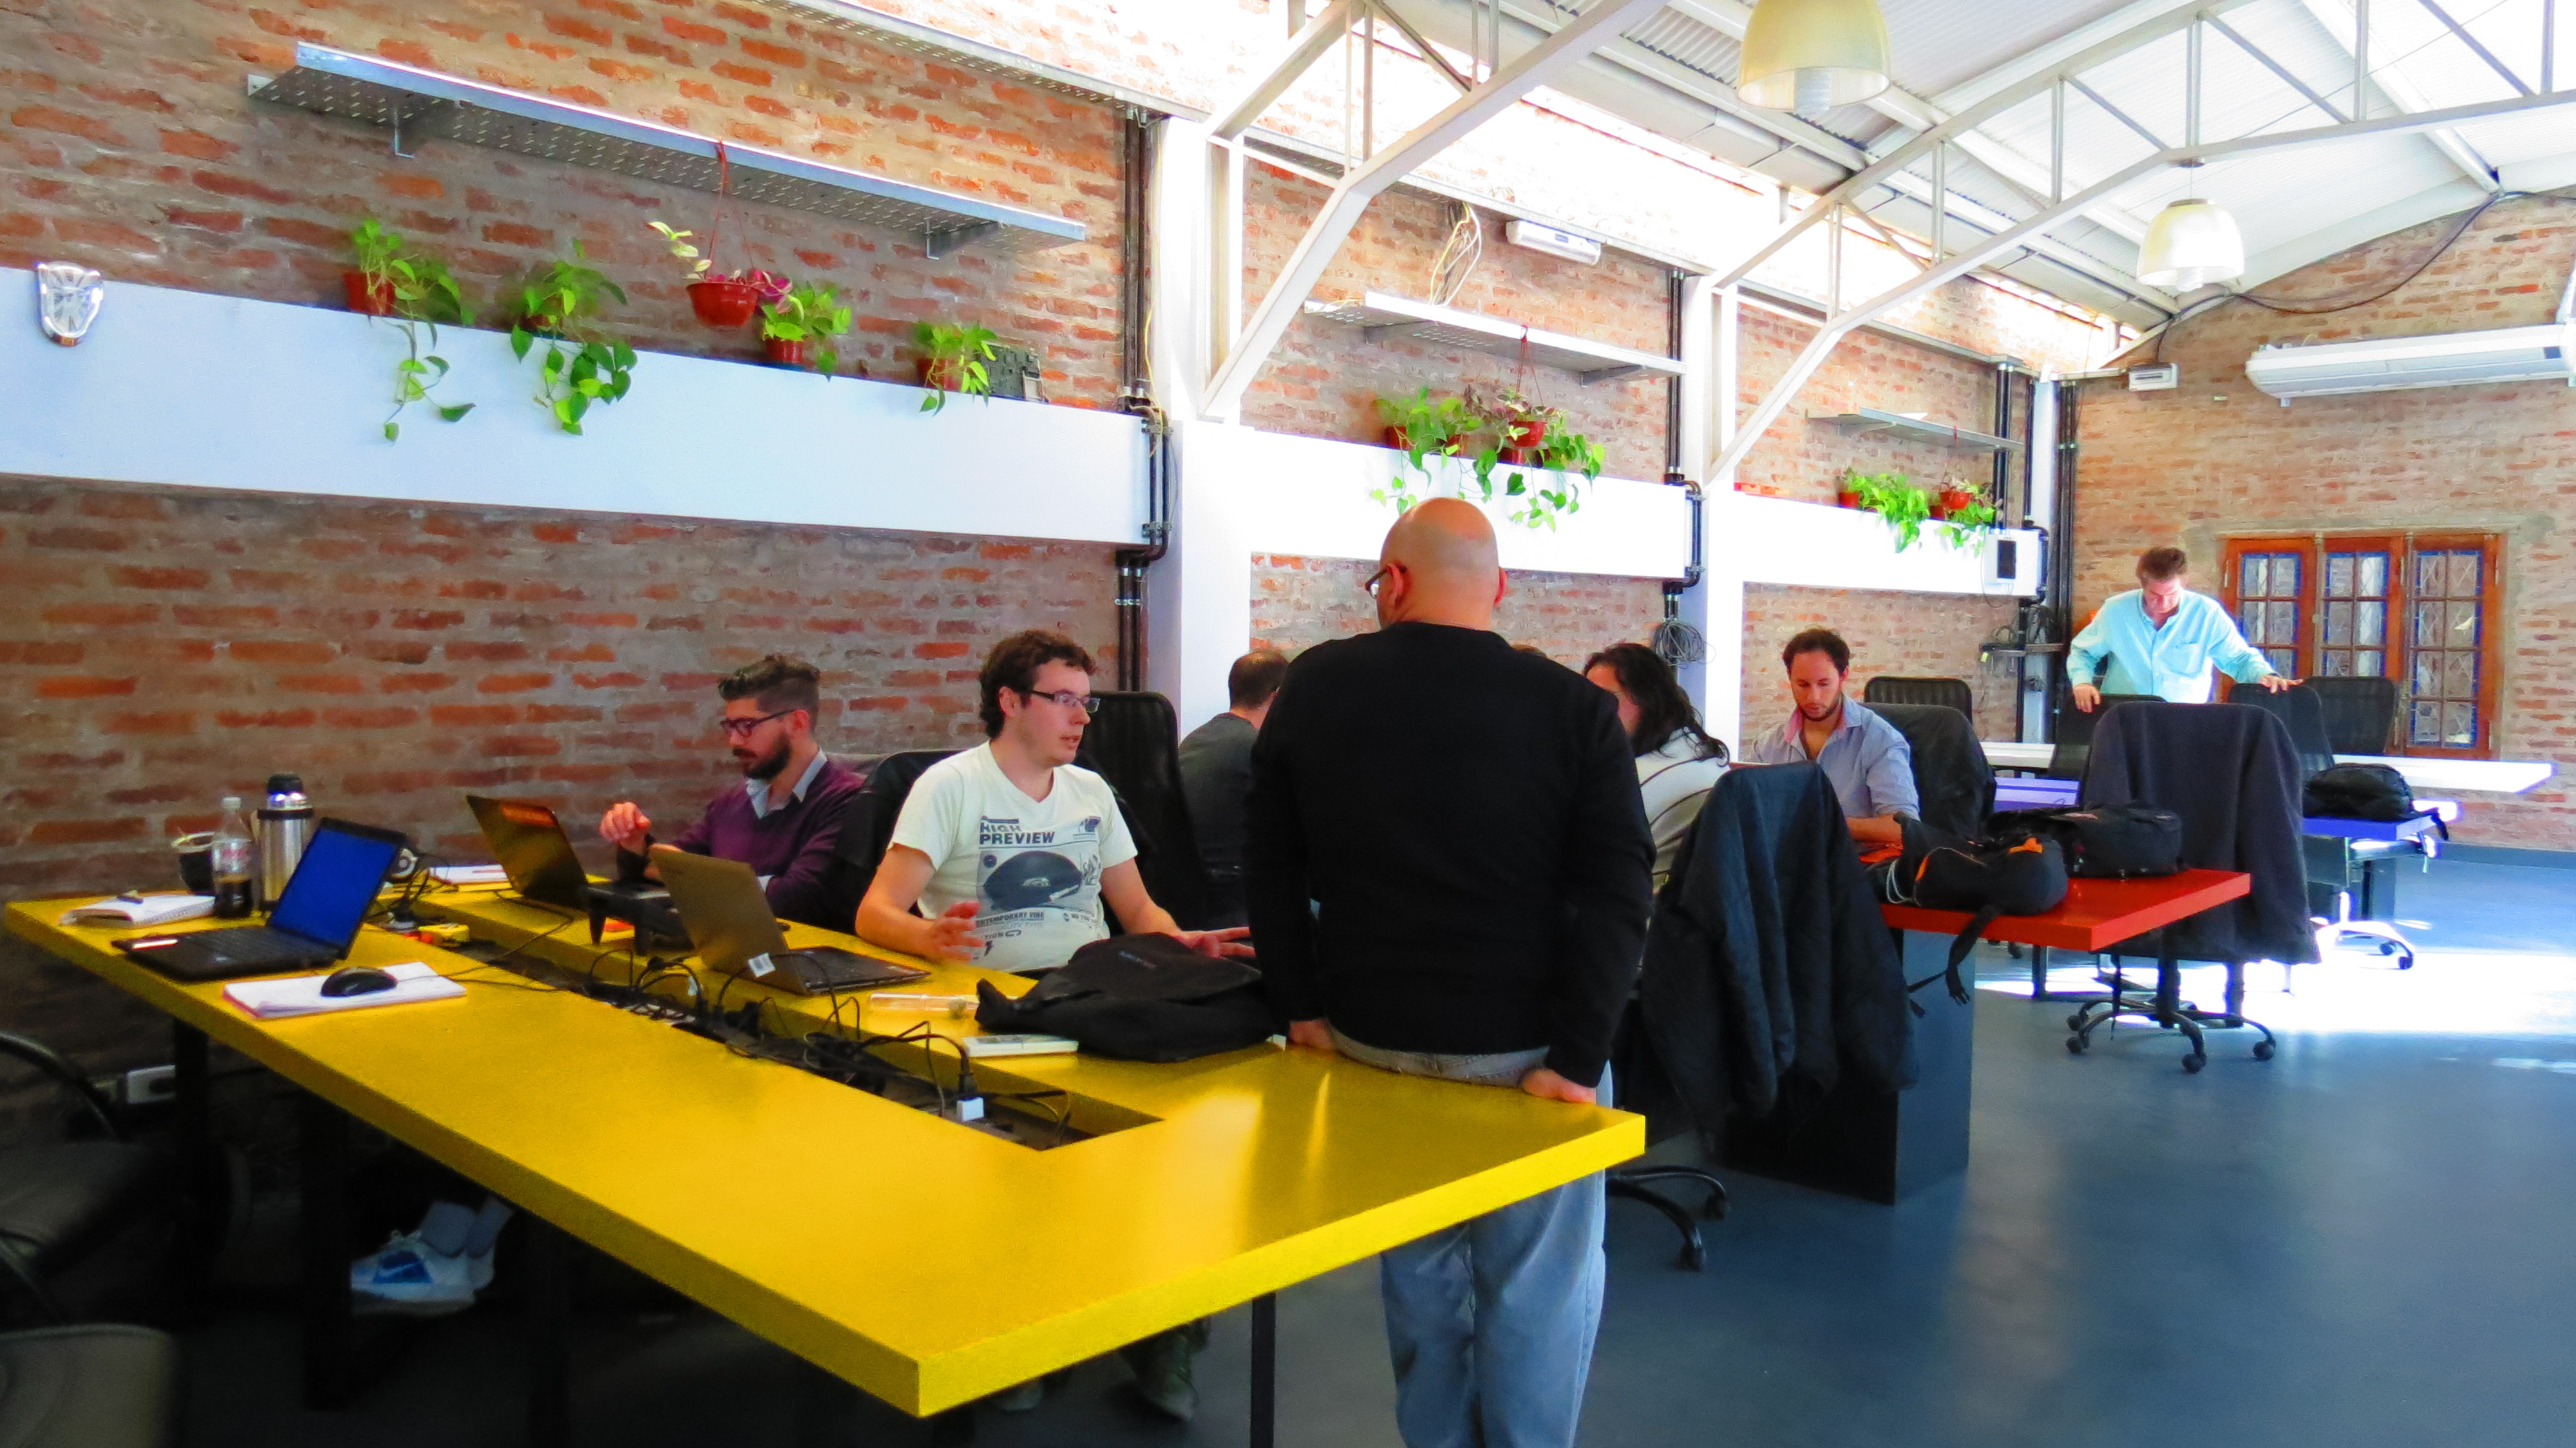 GOWORK COWORKING - OPEN SPACE1